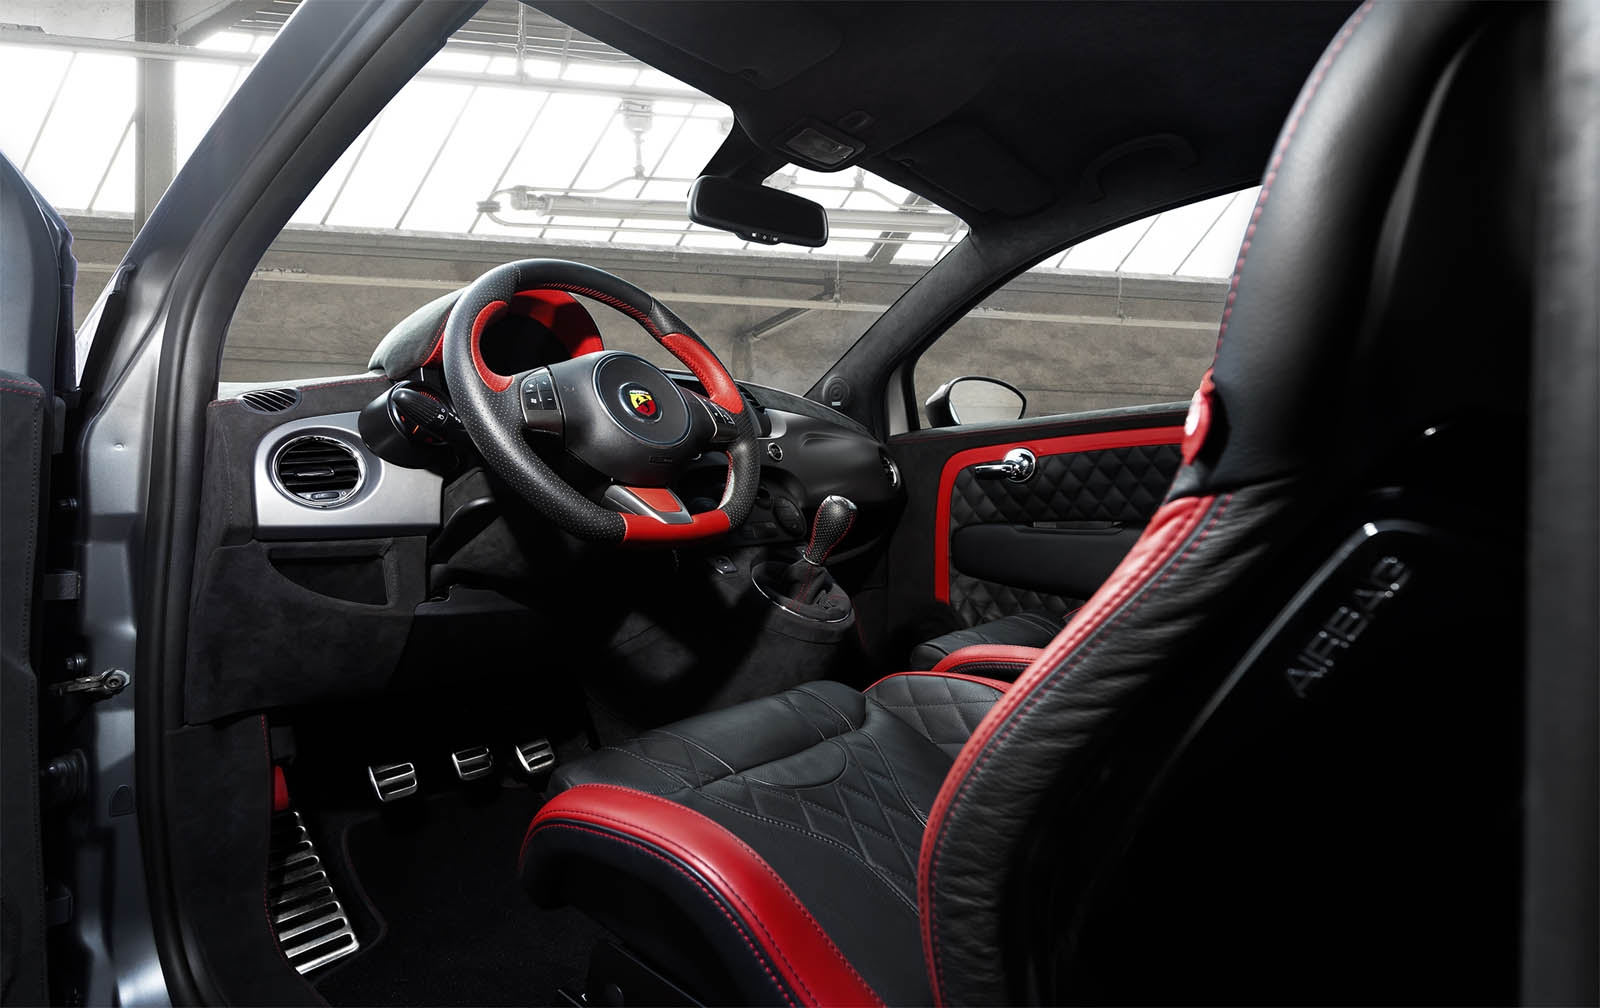 un pr parateur d voile une abarth 500 de plus de 400 ch. Black Bedroom Furniture Sets. Home Design Ideas